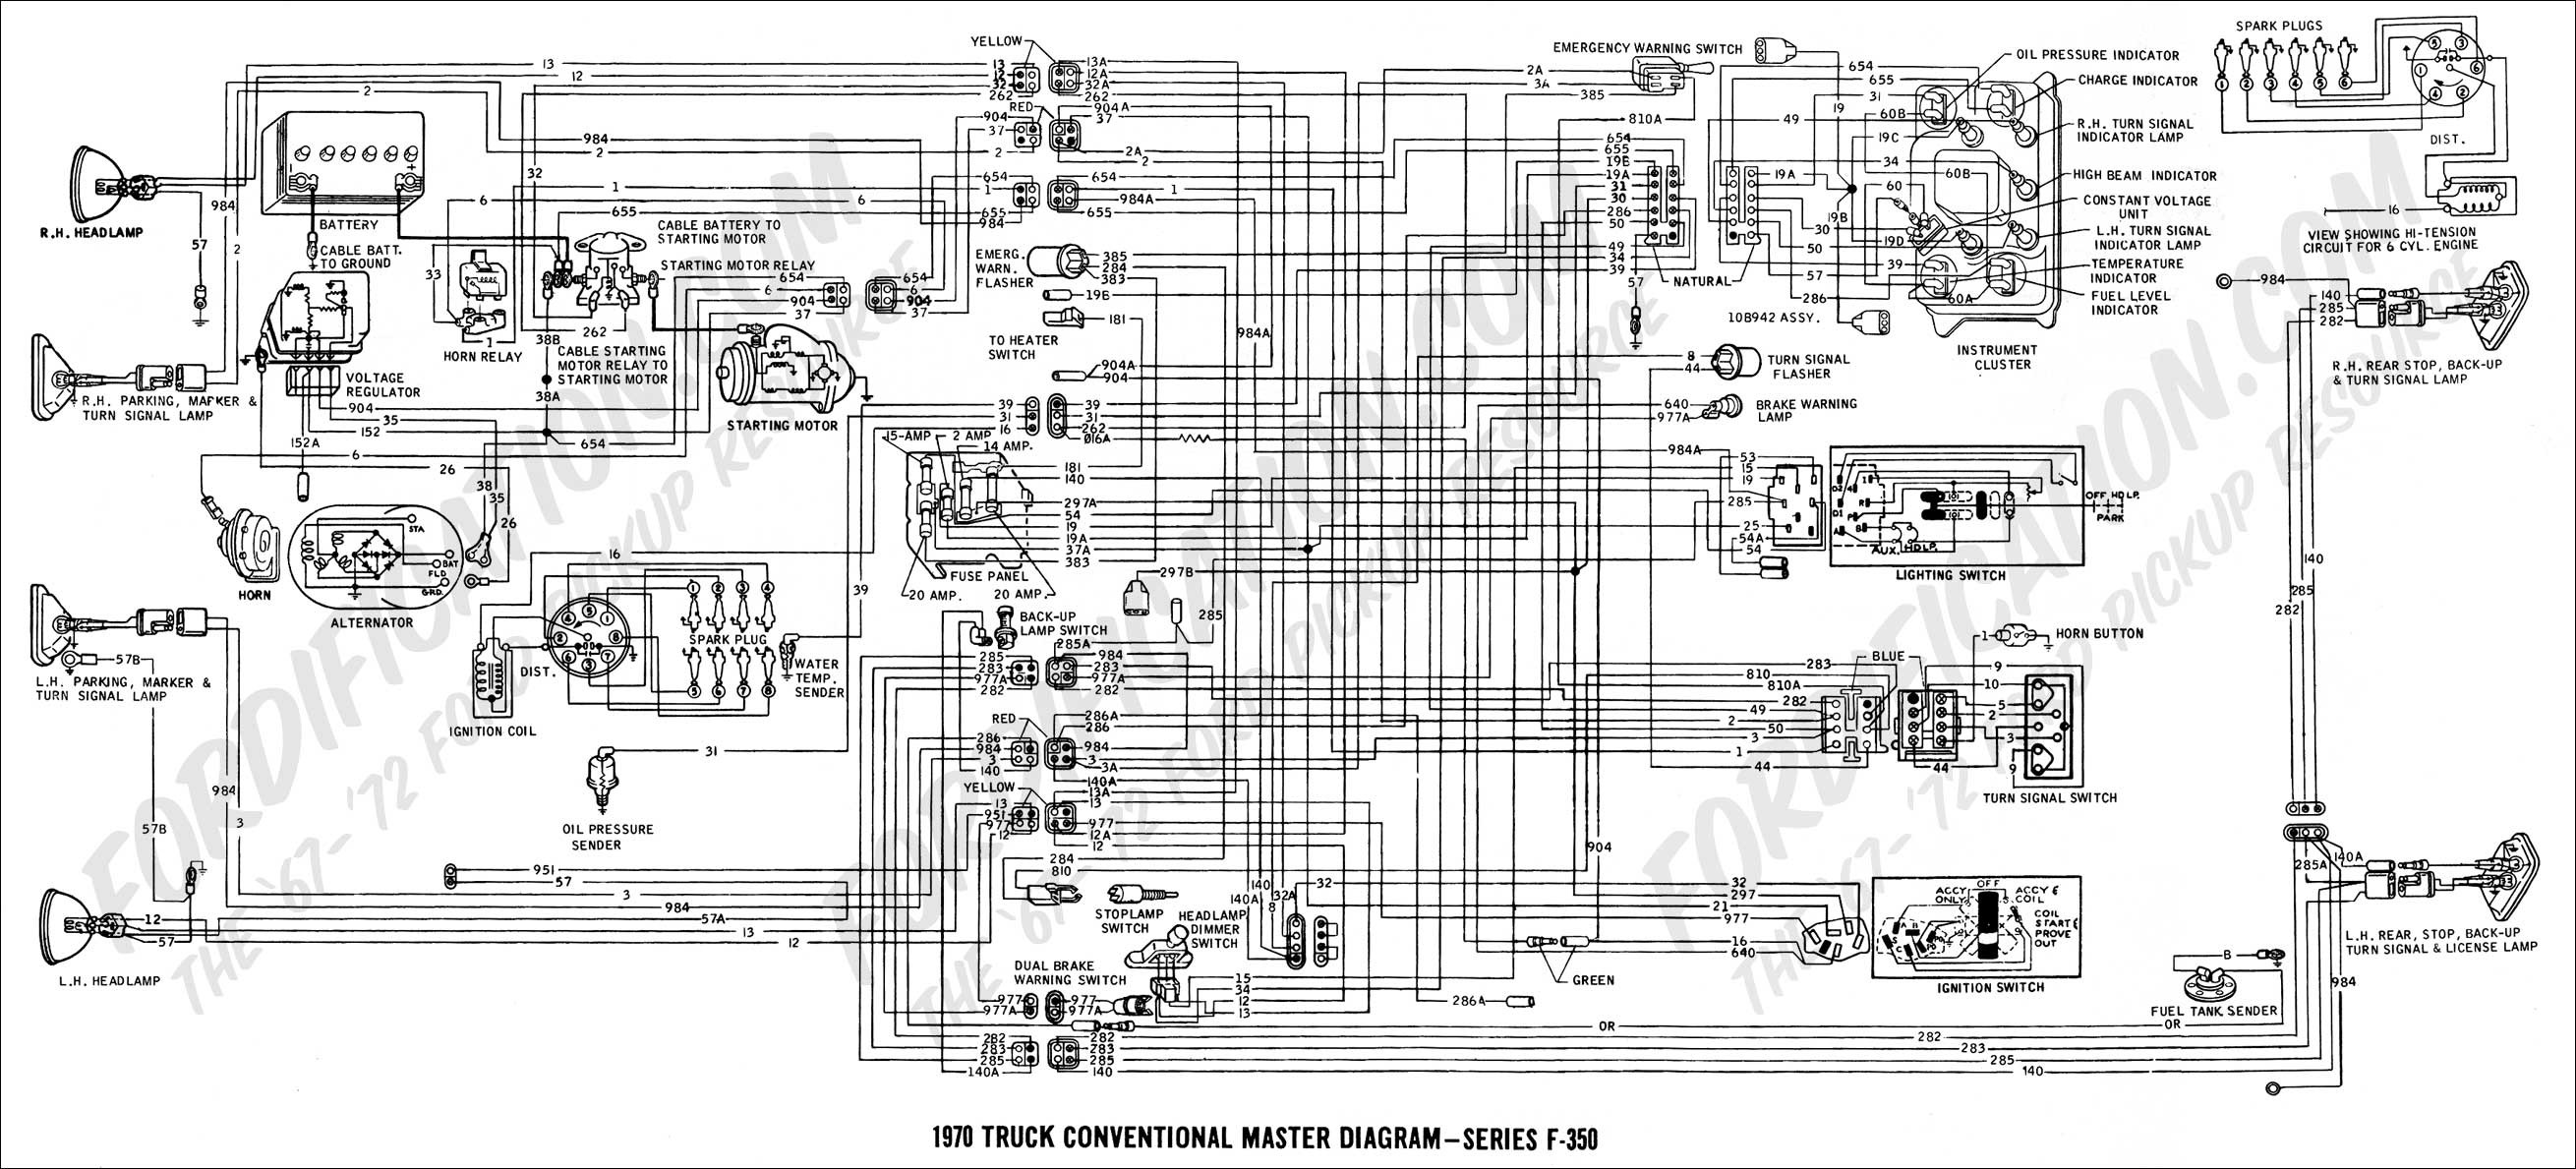 1990 Mustang Wiring Diagram For Nutone Doorbell Ford Schematics As Well F 350 In Addition Headlight